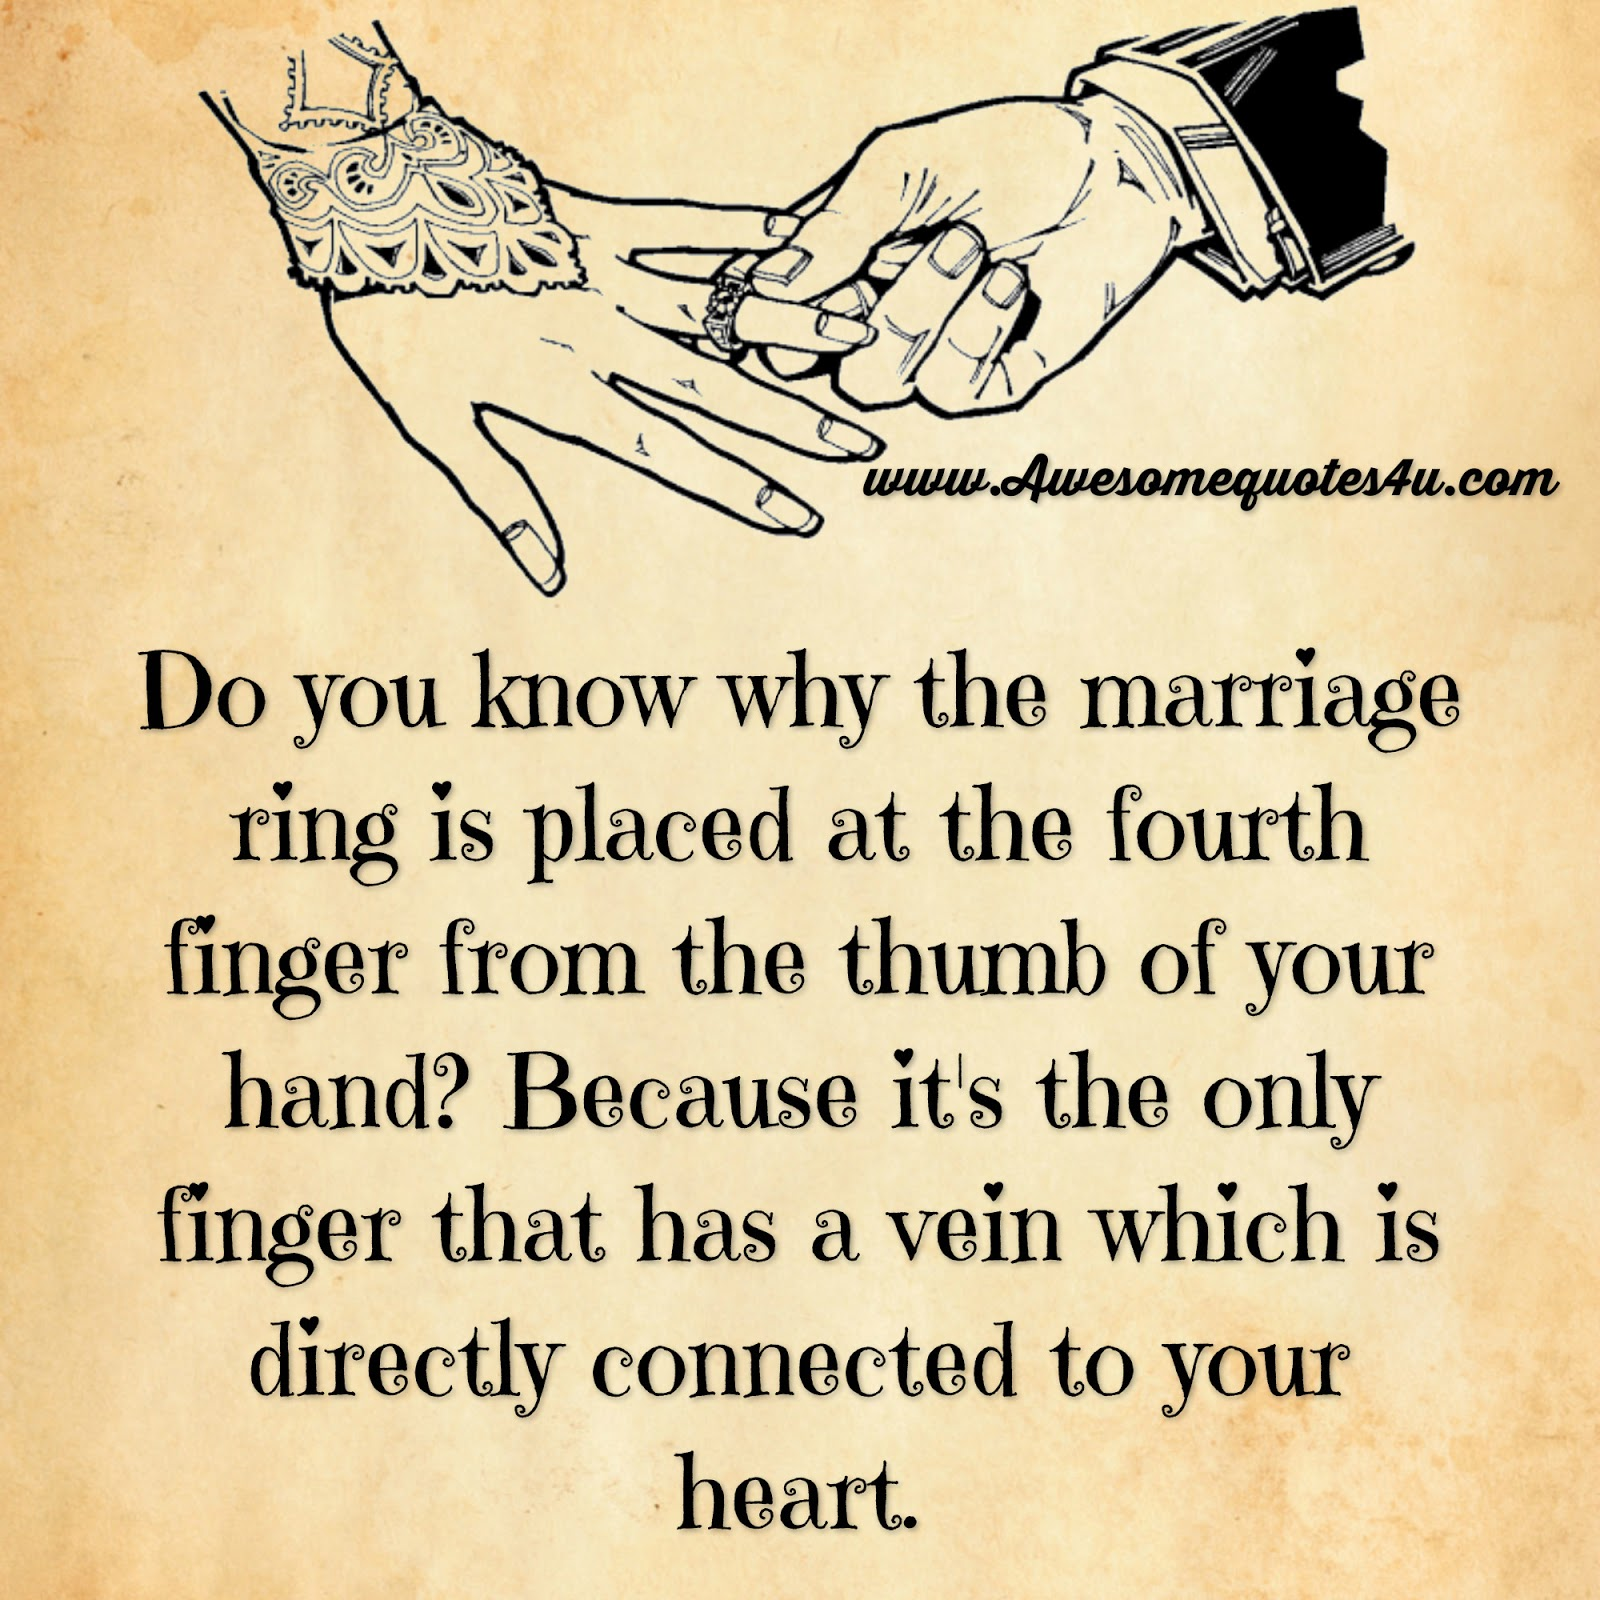 Short I Love You Quotes For Your Husband : Do you know why the marriage ring is placed at the fourth finger from ...